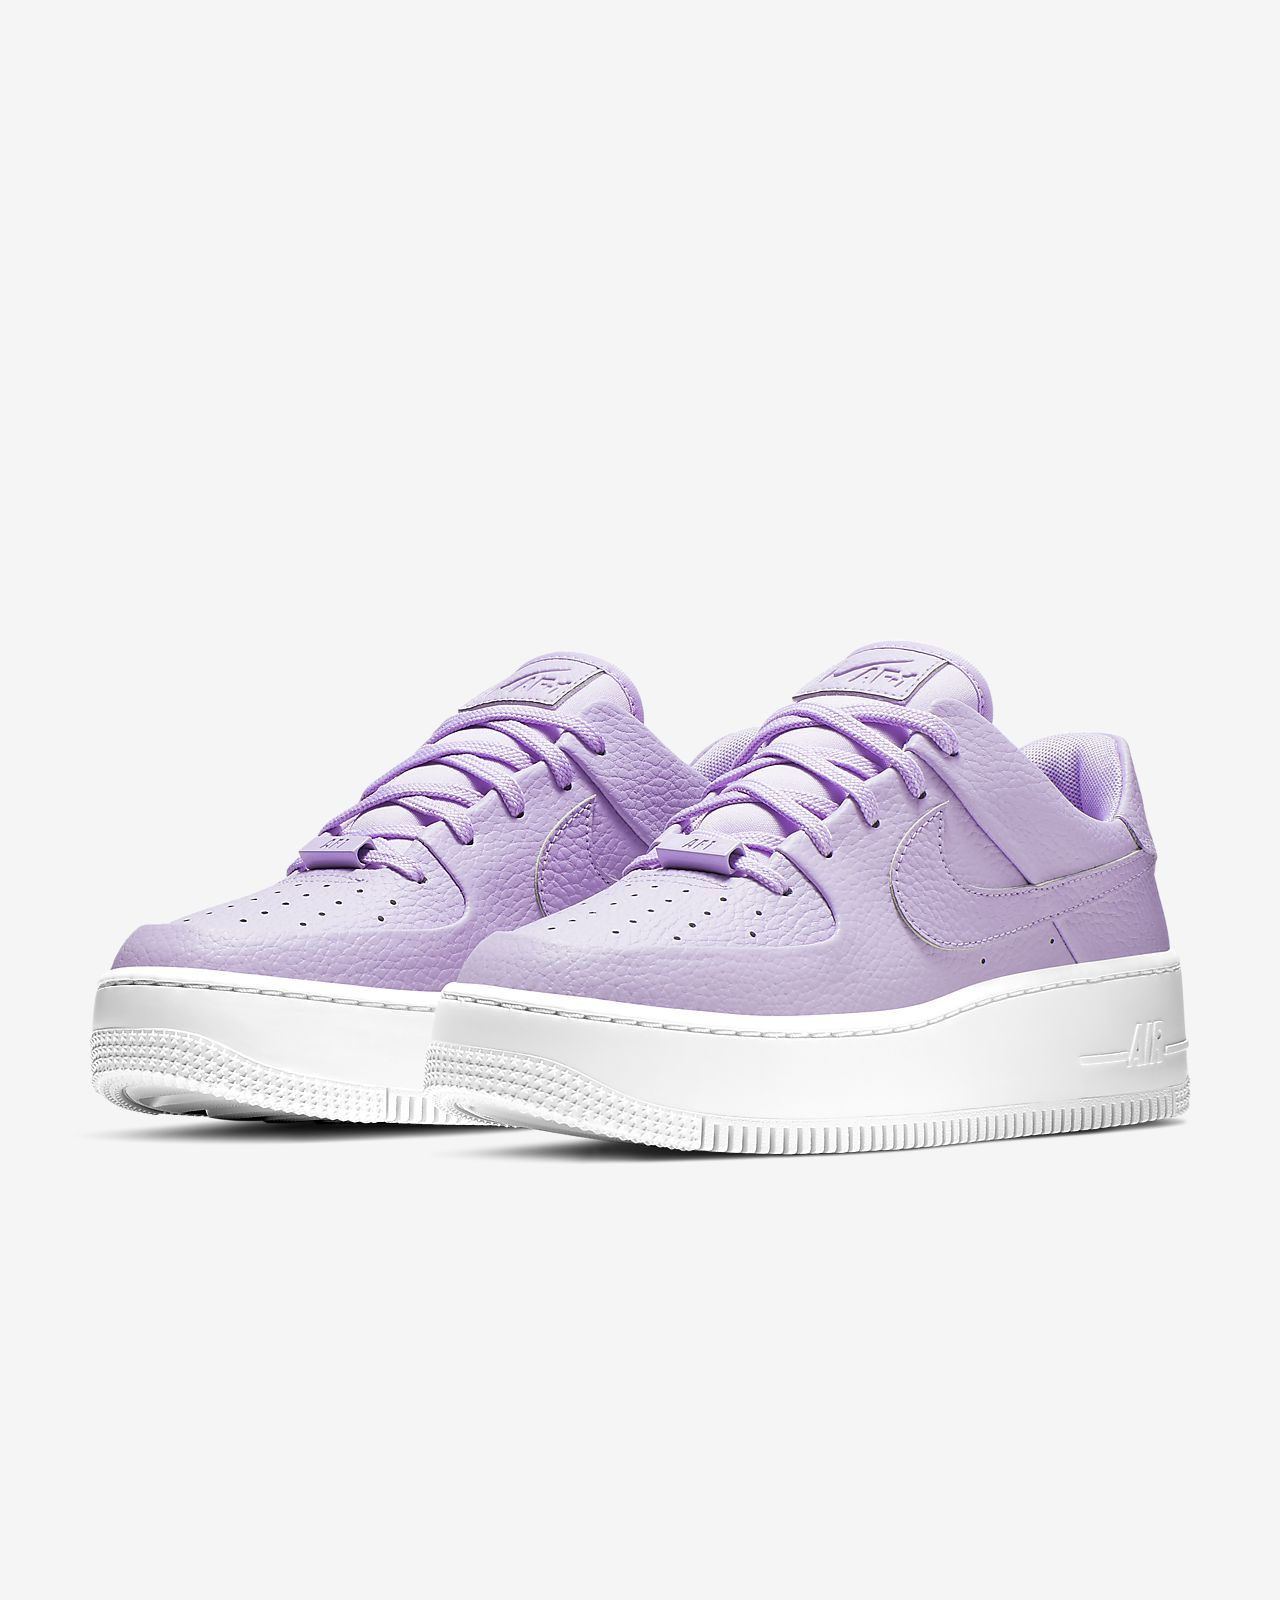 0394c938f1 Nike Air Force 1 Sage Low Women's Shoe. Nike.com AU